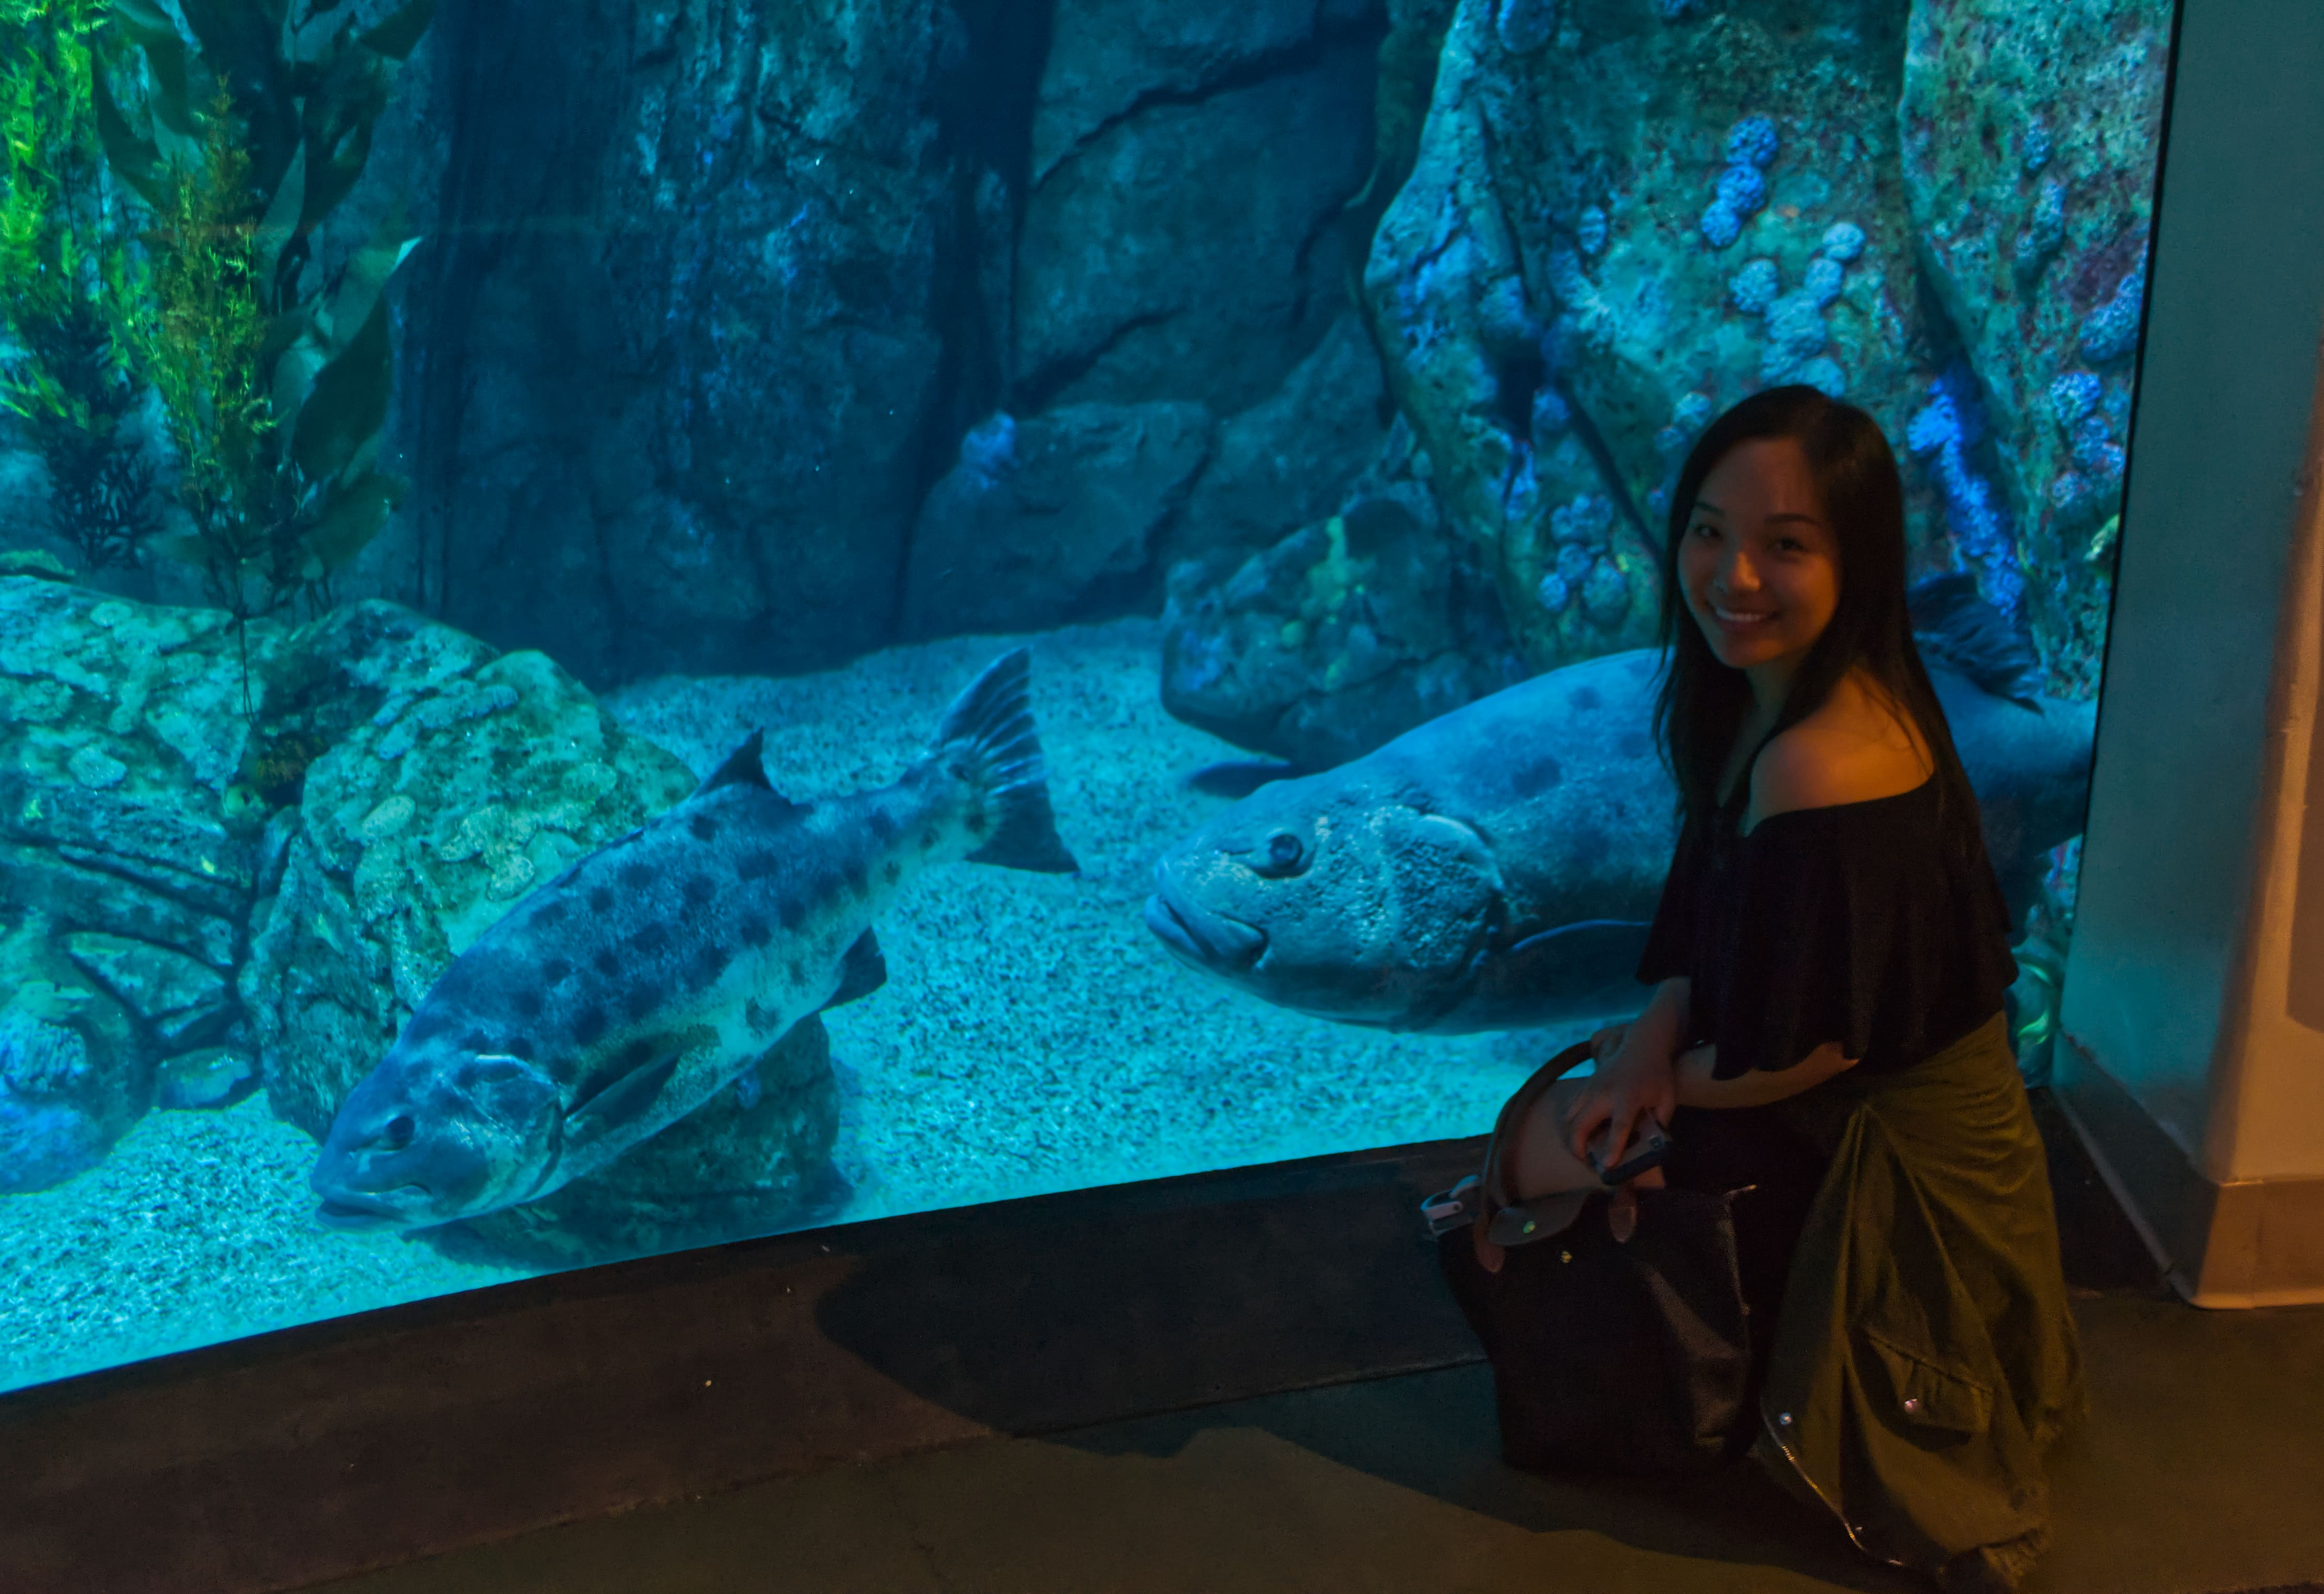 Significantly bigger fish at the Aquarium of the Pacific